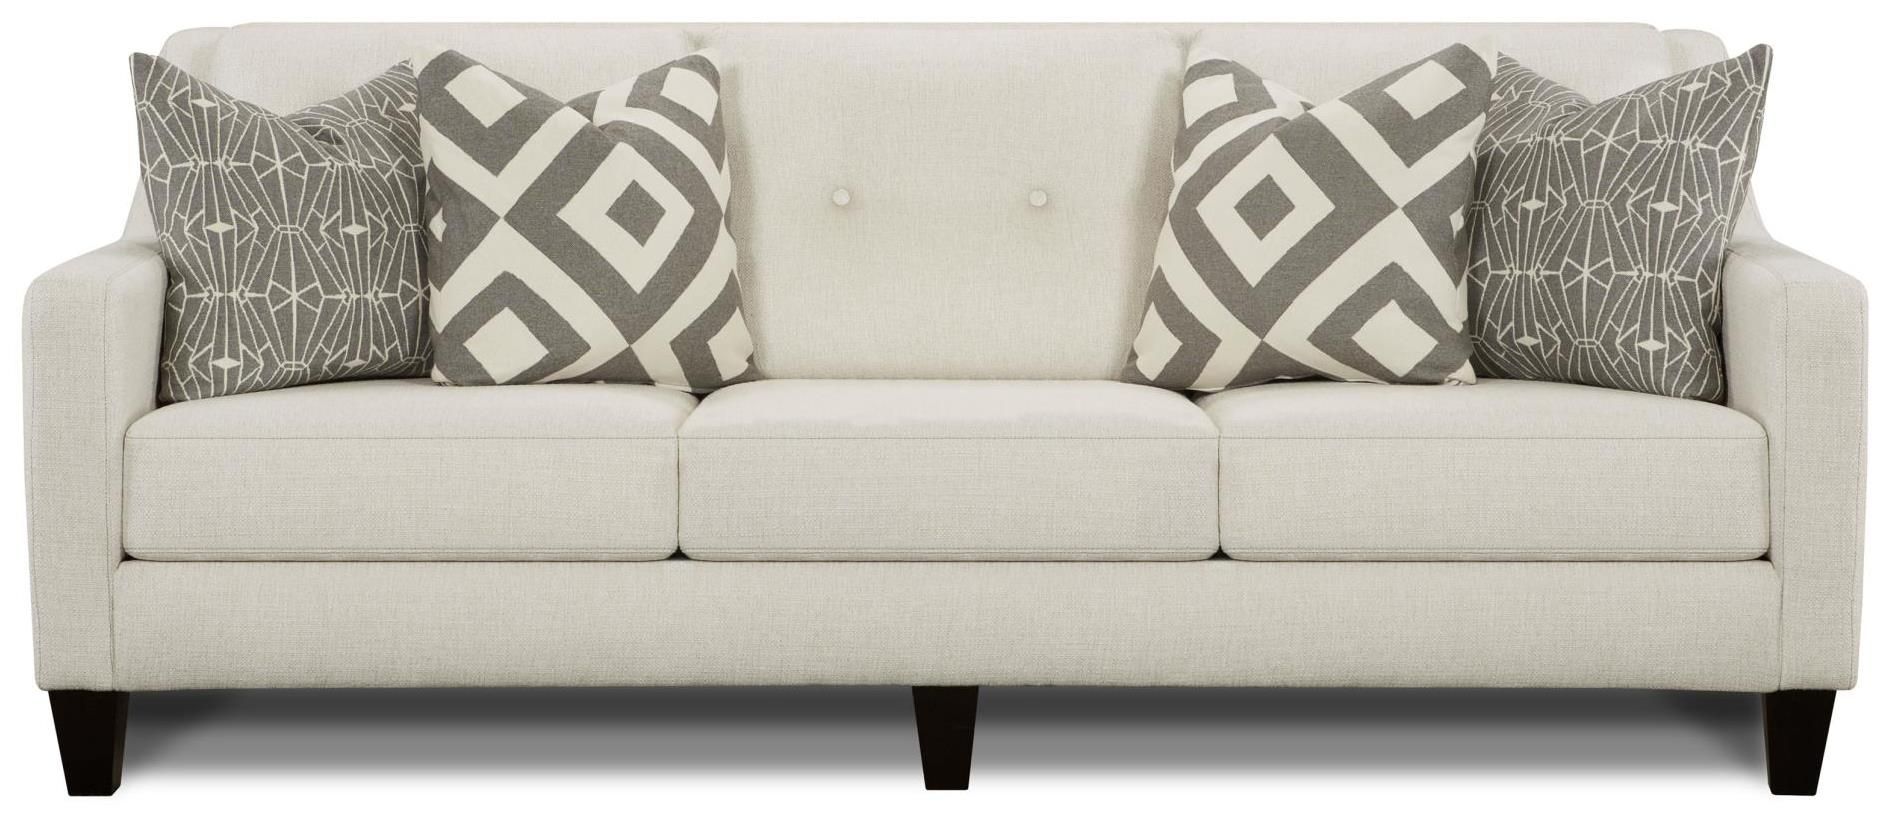 Emblem Contemporary Sofa With Track Arms Belfort Furniture Sofas